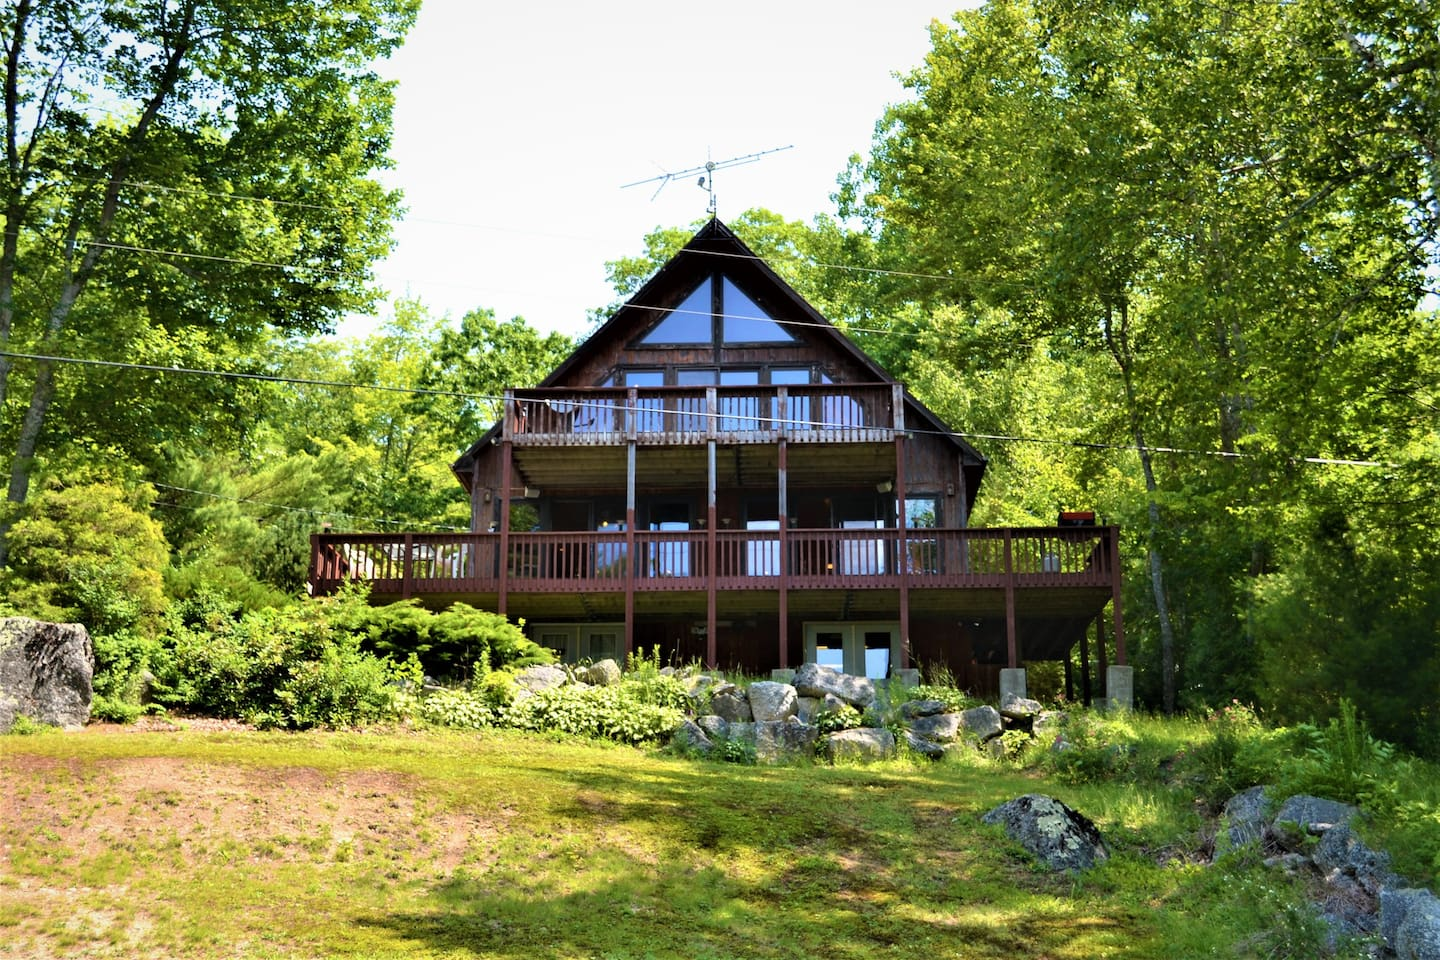 Majestic, surrounded by nature and your own private balcony overlooking the pond. It doesn't get much better than this!